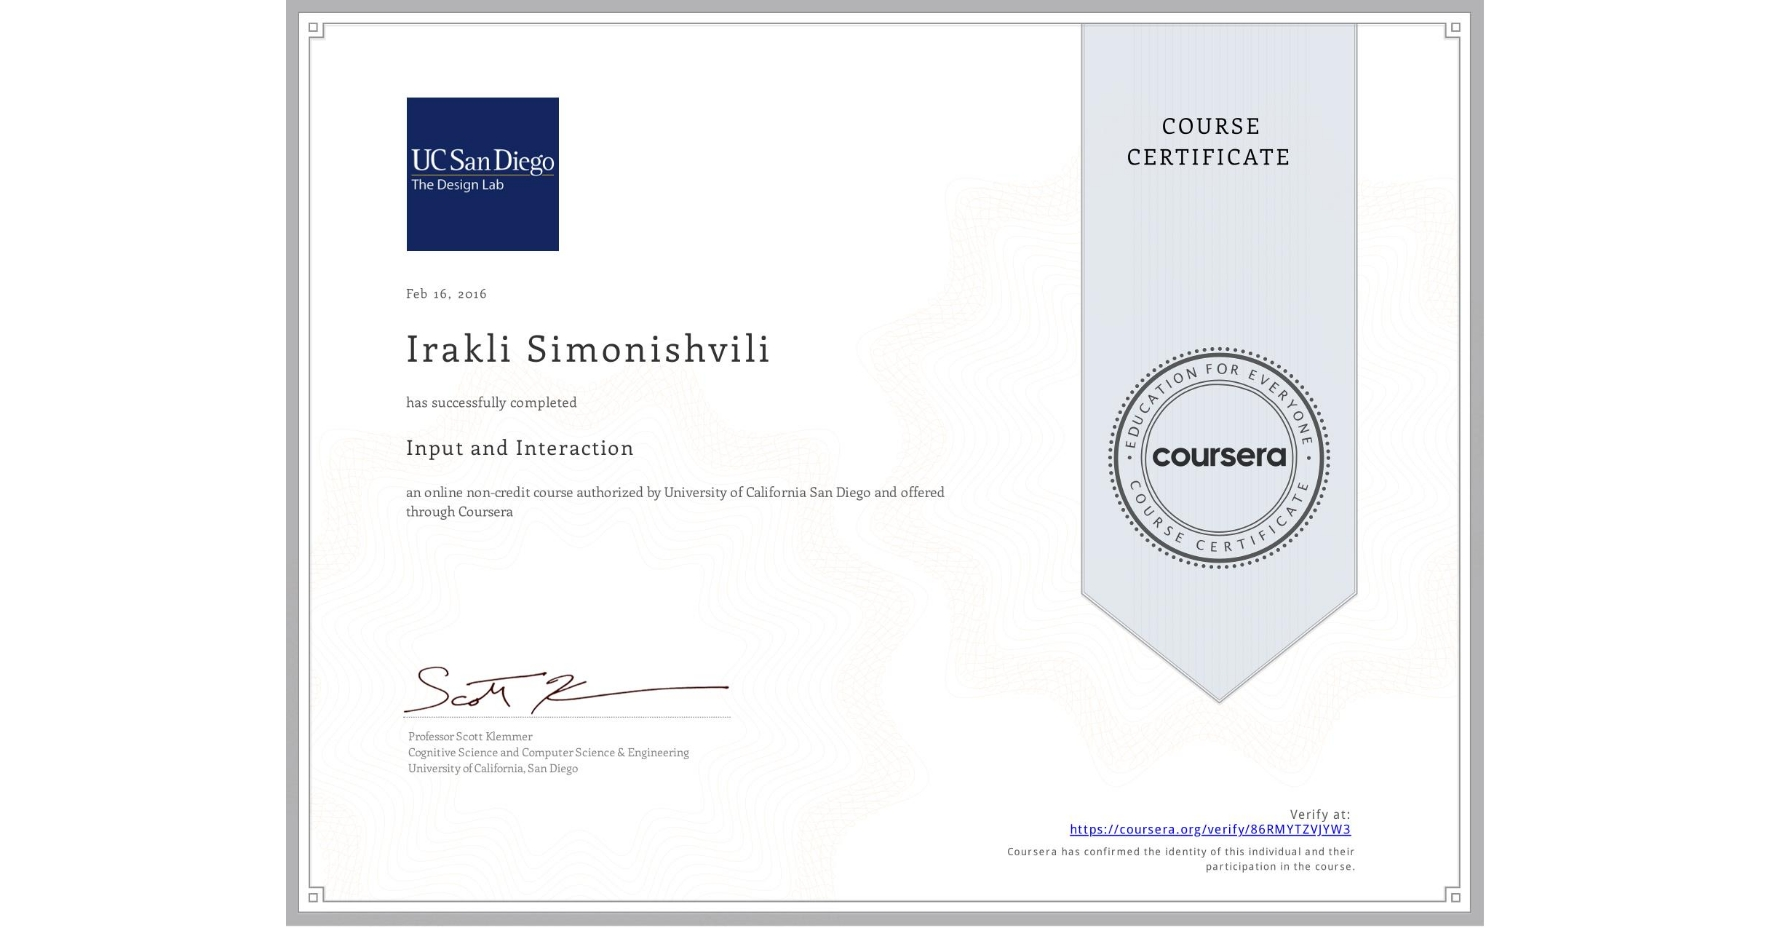 View certificate for Irakli Simonishvili, Input and Interaction, an online non-credit course authorized by University of California San Diego and offered through Coursera